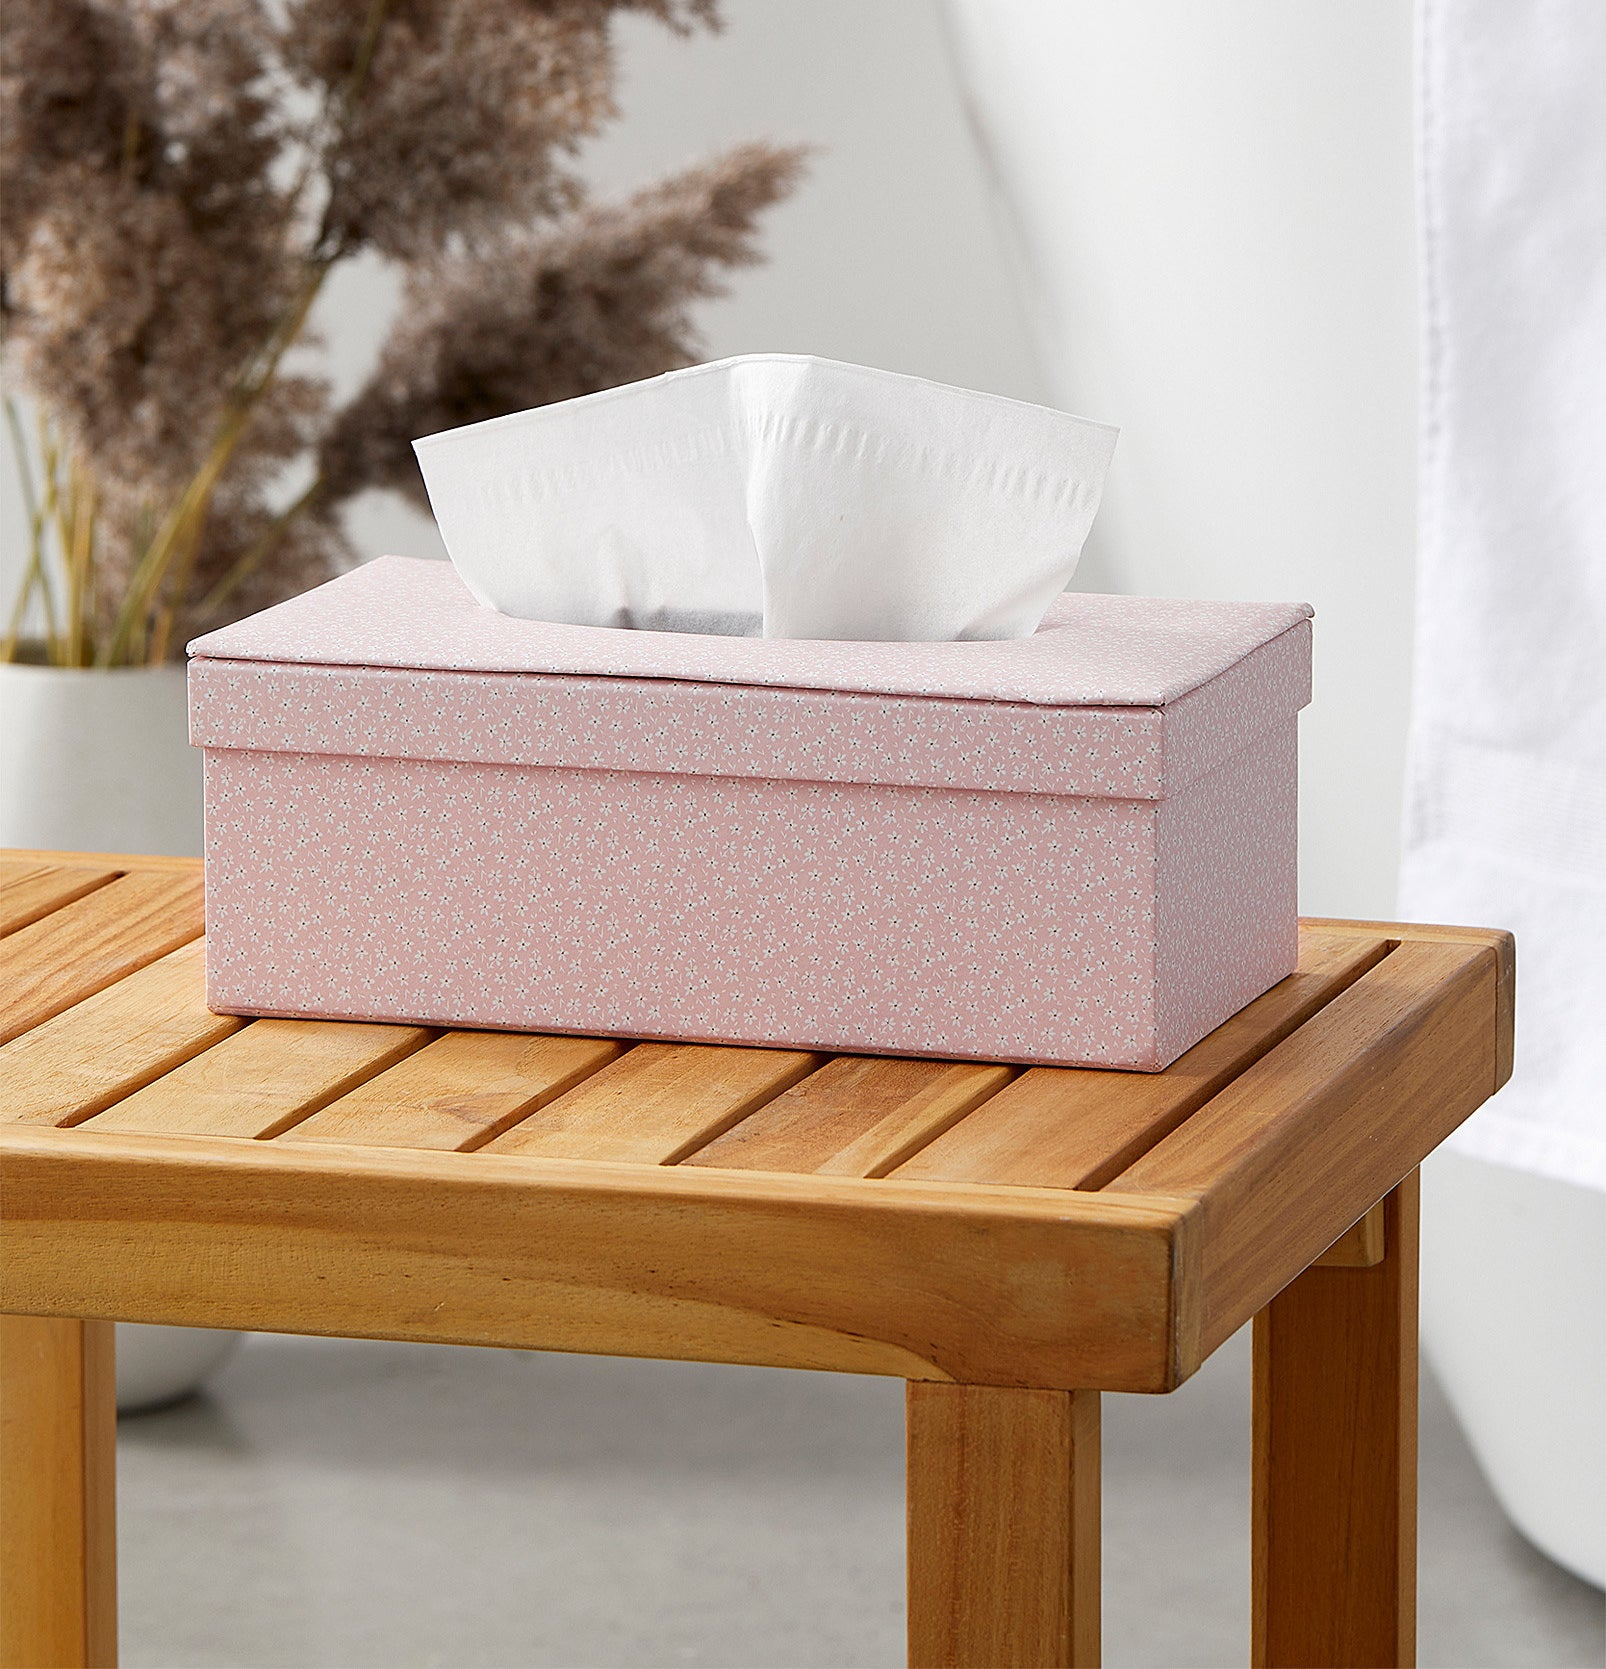 A tissue box on a wooden stool